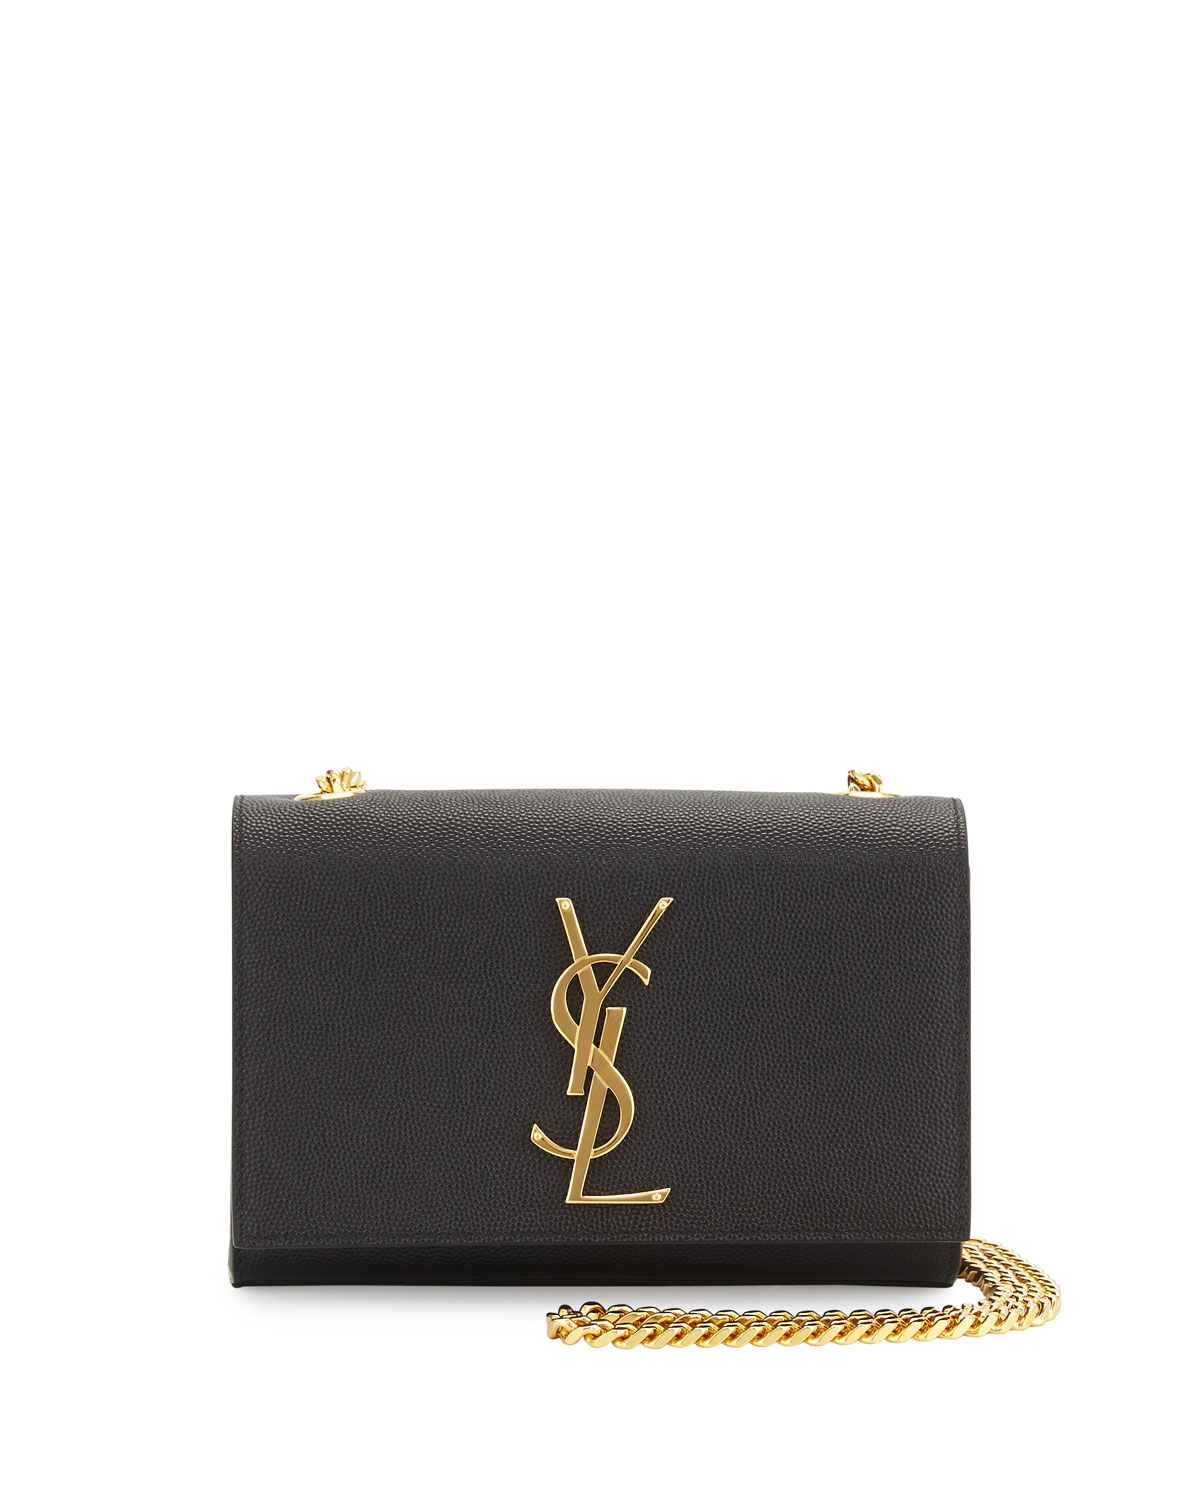 saint laurent kate monogram ysl leather crossbody bag black